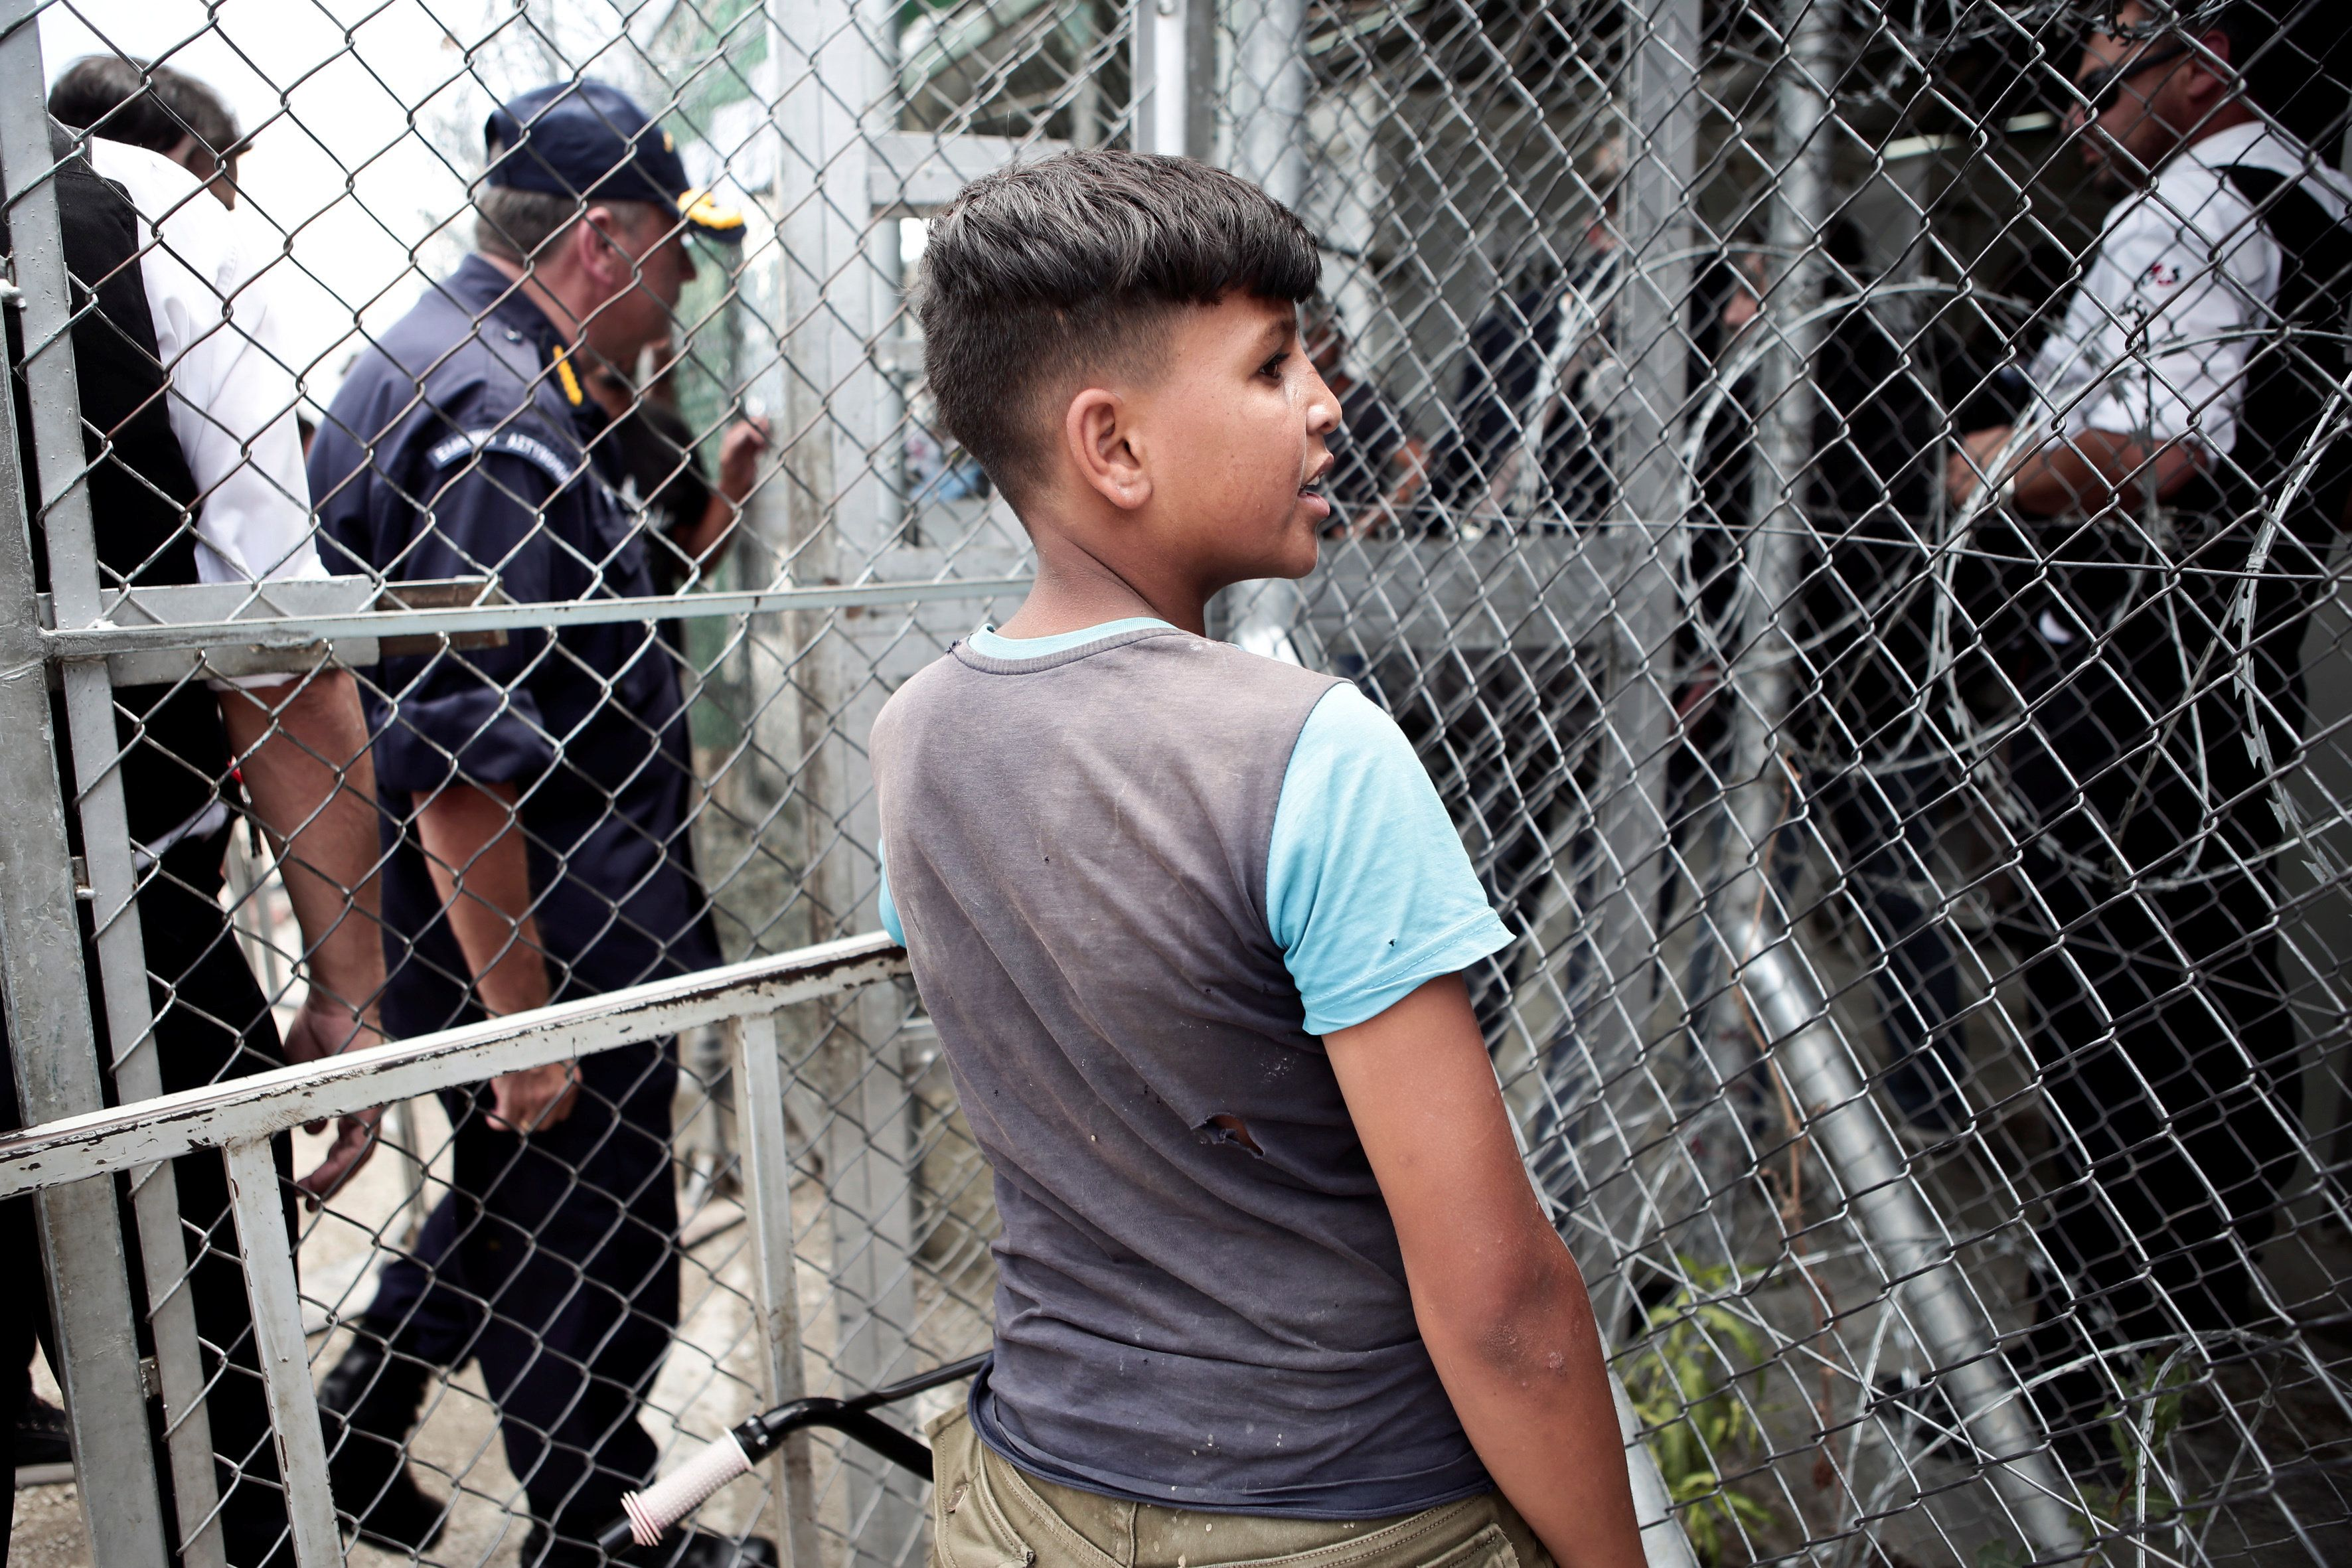 A migrant boy stands next to a metal fence at the Moria camp for refugees and migrants on the island of Lesbos, June 27, 2018. Picture taken June 27. REUTERS/Elias Marcou